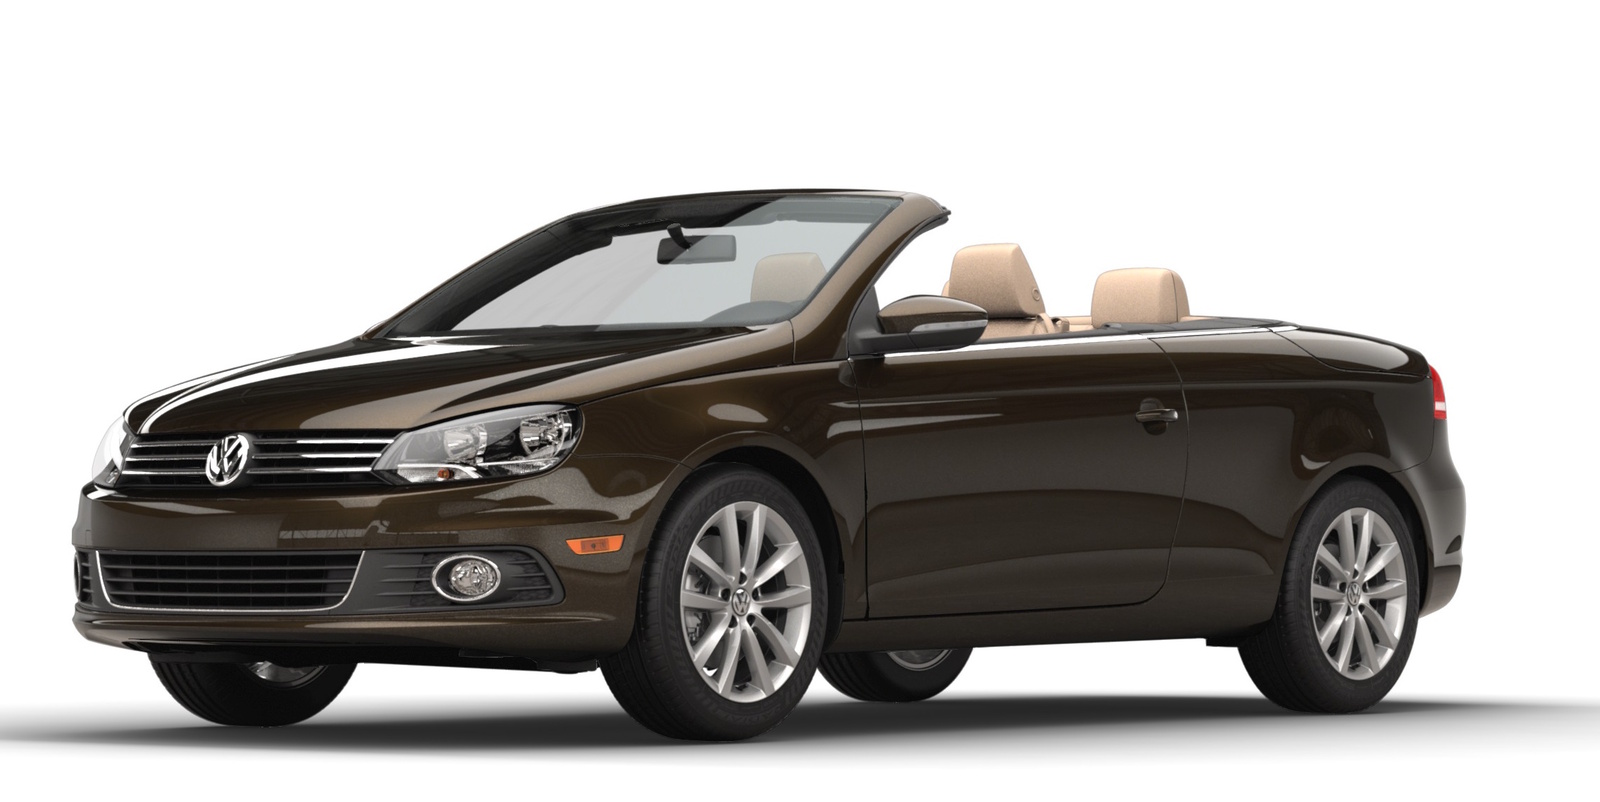 2016 volkswagen eos for sale in new york ny cargurus. Black Bedroom Furniture Sets. Home Design Ideas